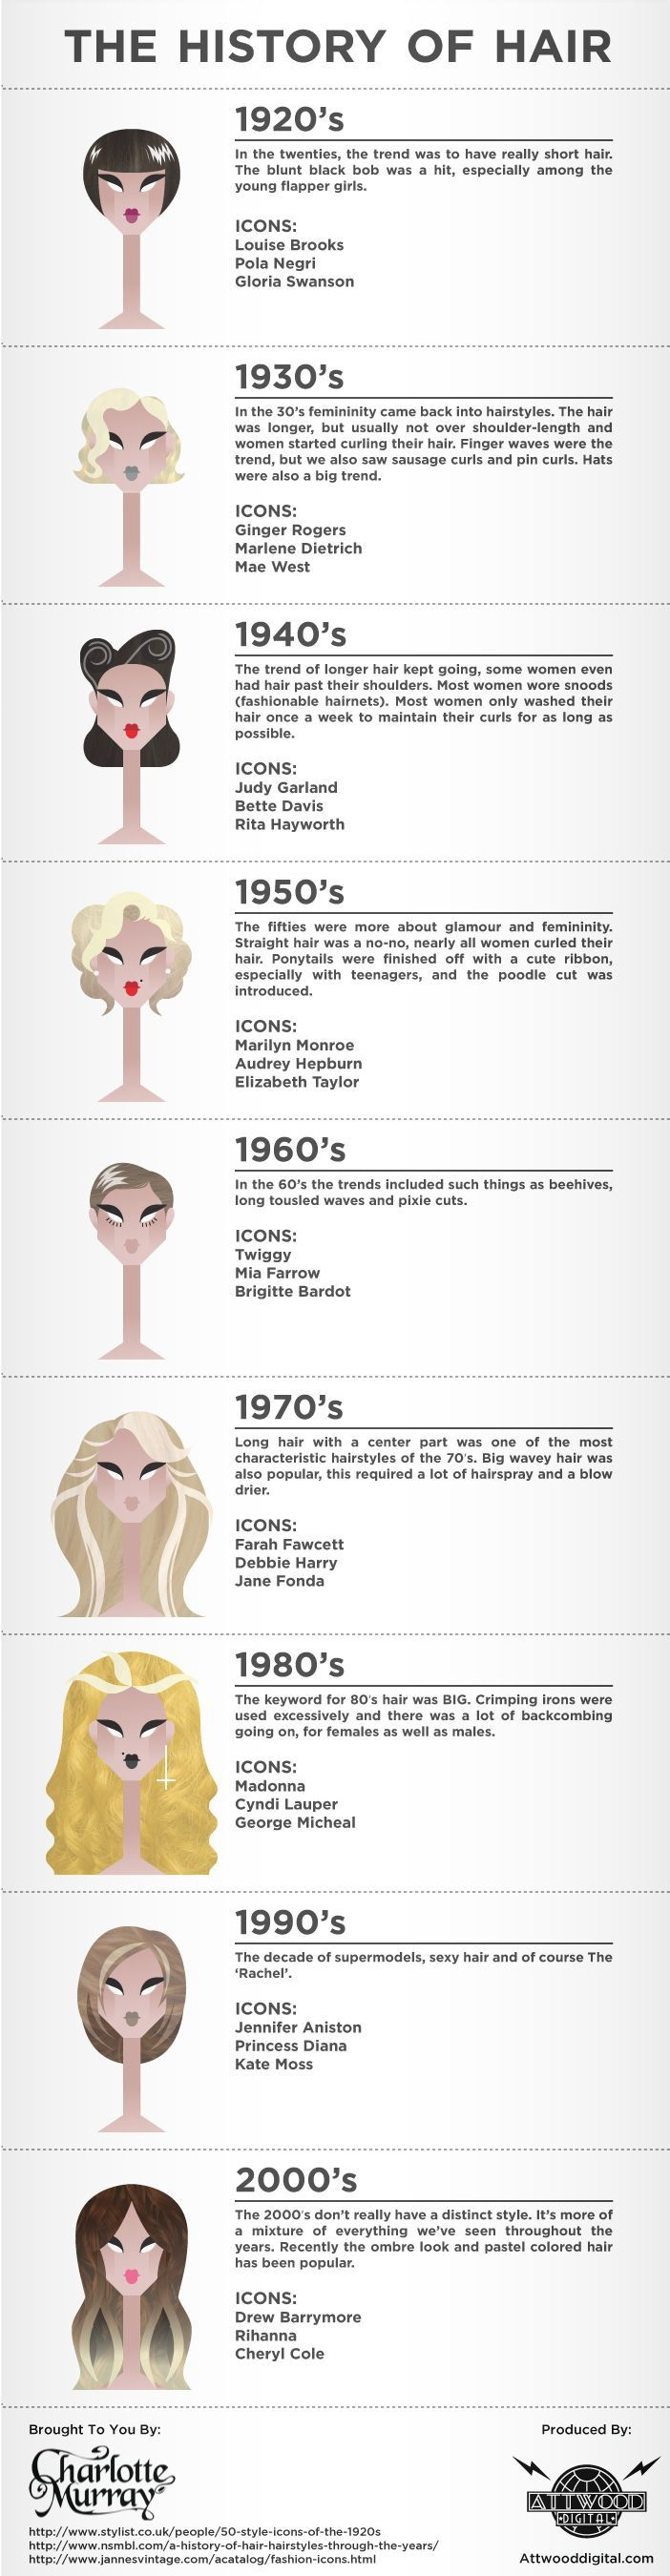 The history of hair                                                                                                                                                      More